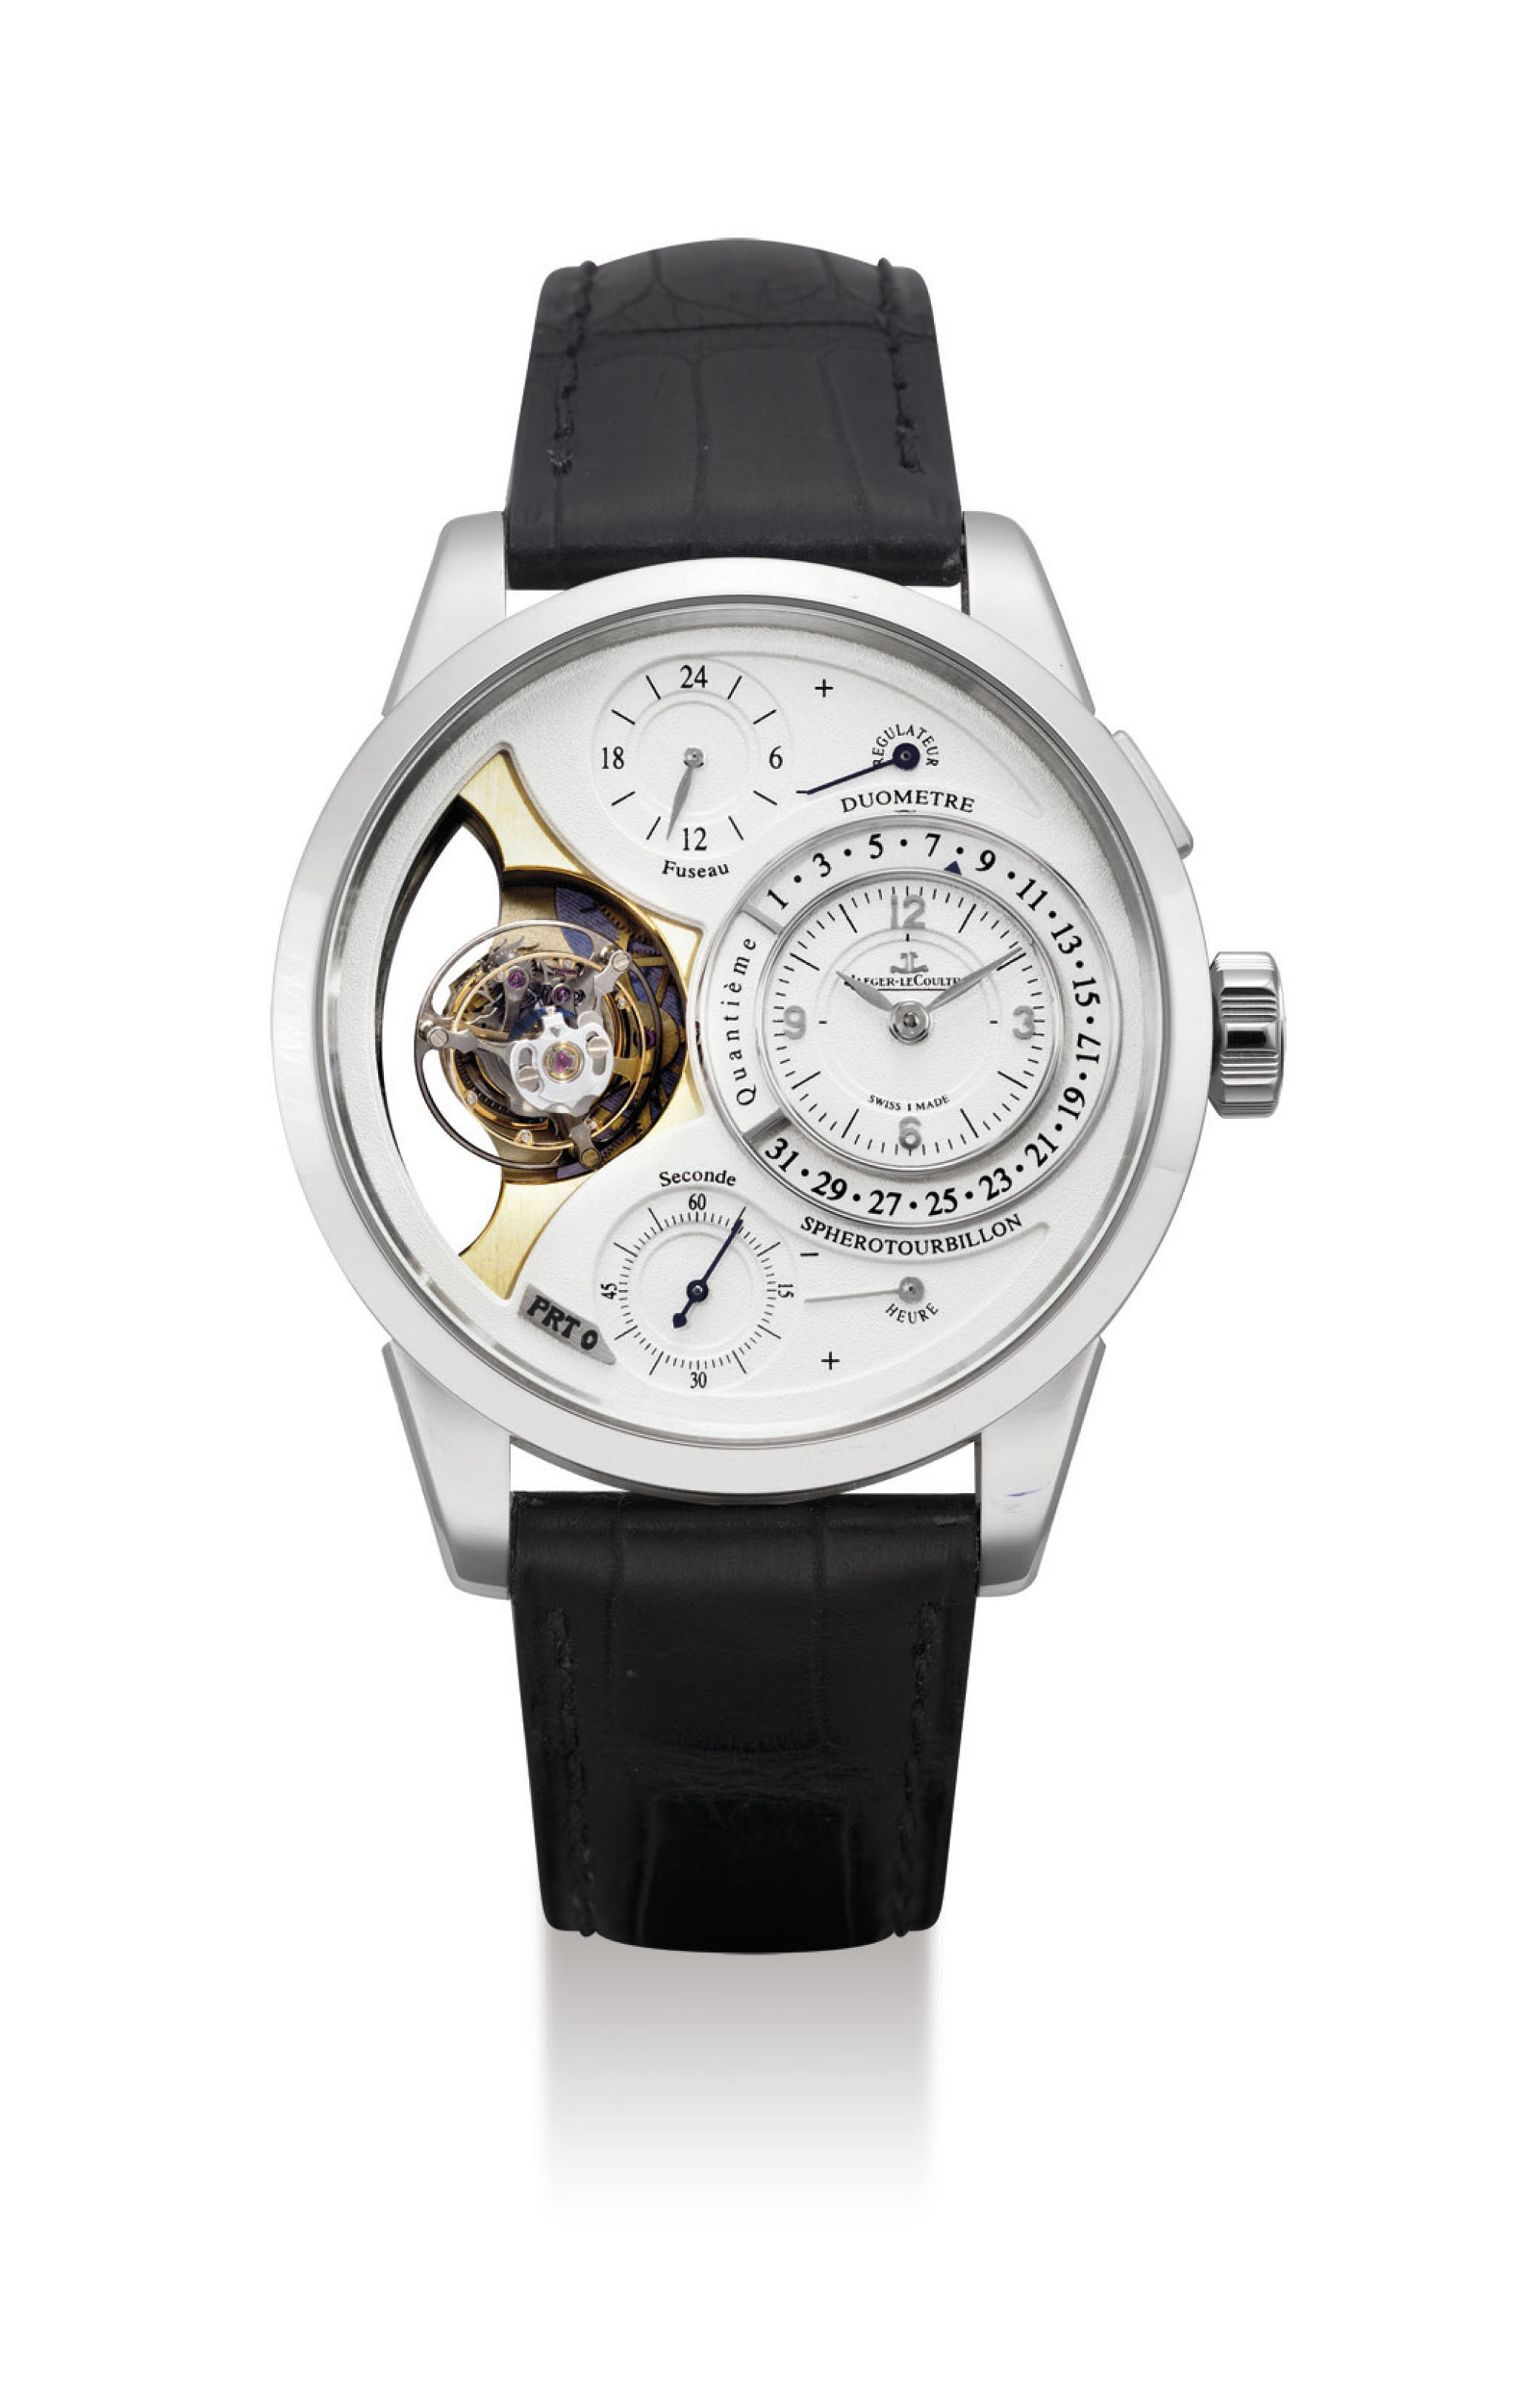 JAEGER-LECOULTRE. AN EXTREMELY FINE PLATINUM MULTI-AXIS TOURBILLION DUAL TIME PROTOTYPE WRISTWATCH WITH RETROGRADE DATE, TWIN POWER RESERVE INDICATION AND FLYBACK SECONDS